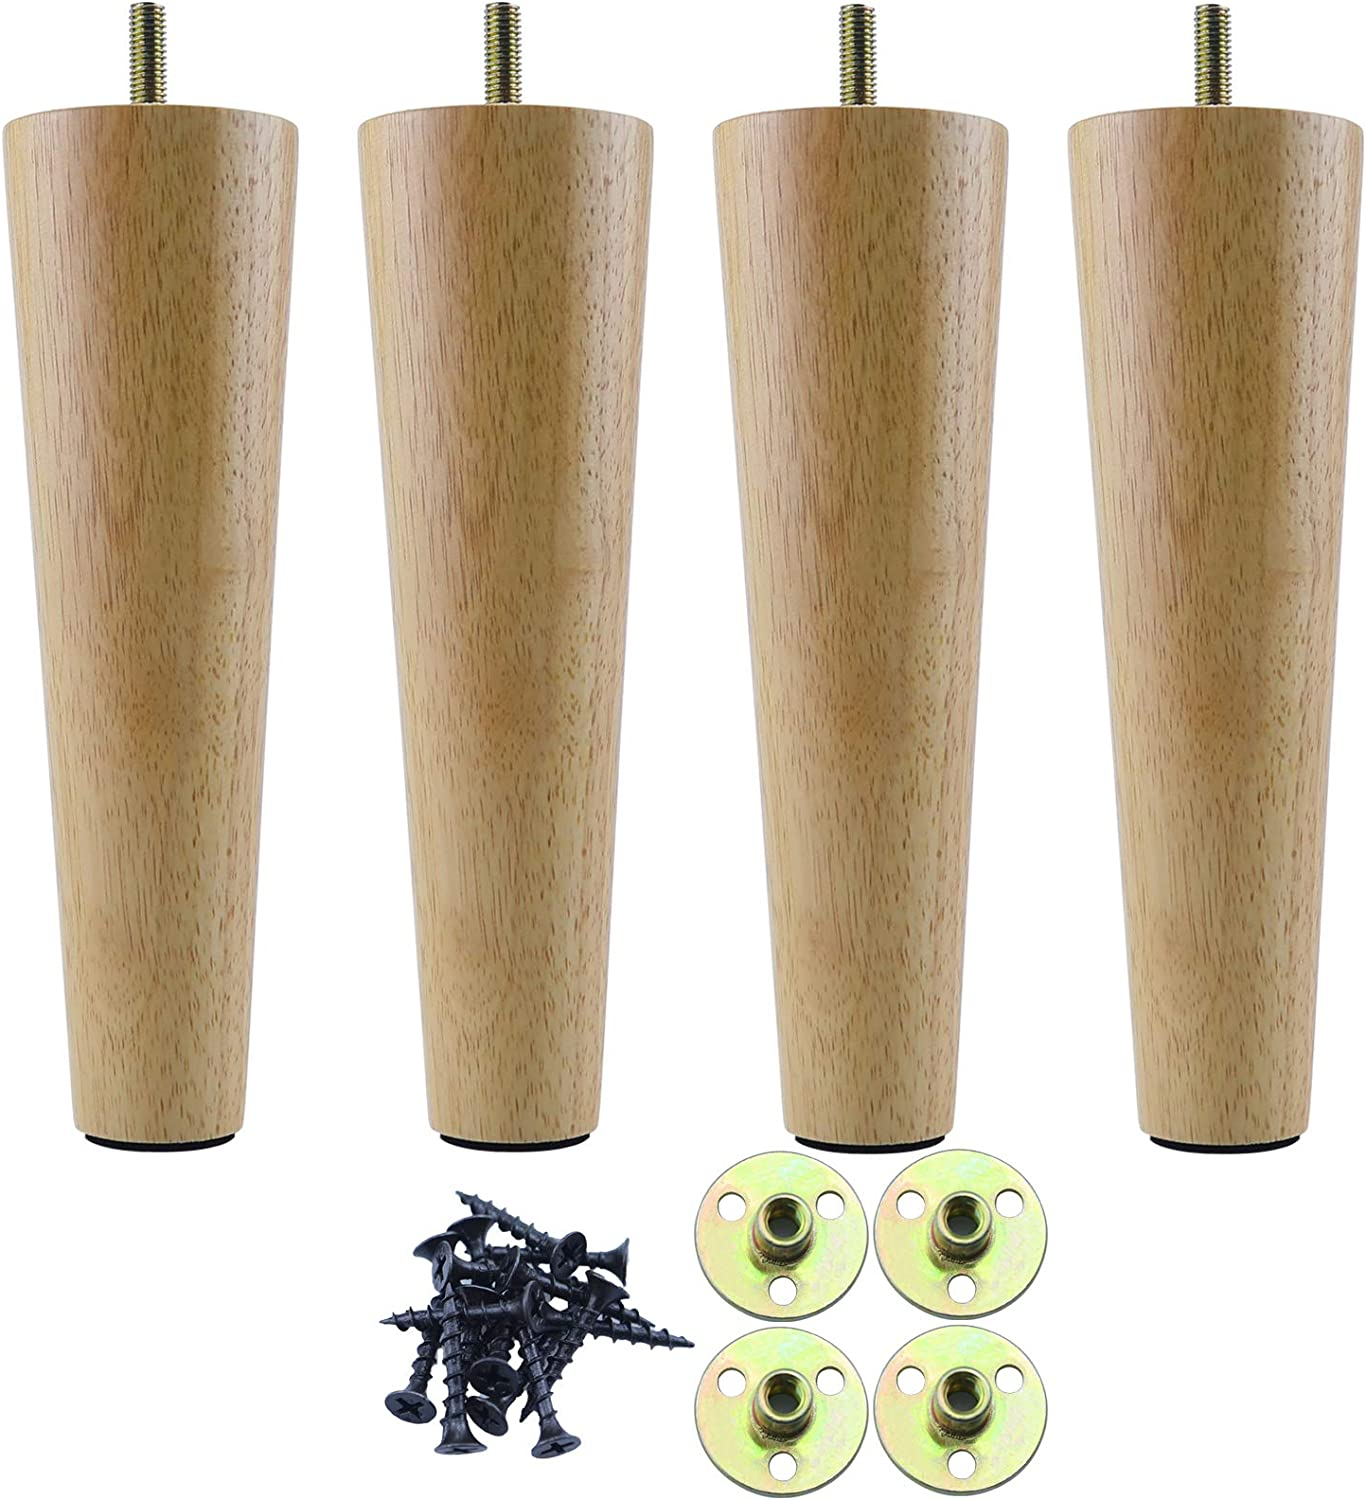 8 Inch 100% Solid Wood Furniture Legs Sofa Legs Set of 4, Natural White Furniture Feet Set of 4, Replacement Couch Legs for Chair, Cabinet, Mid Century Modern Dresser Or Home DIY Projects Bun Feet